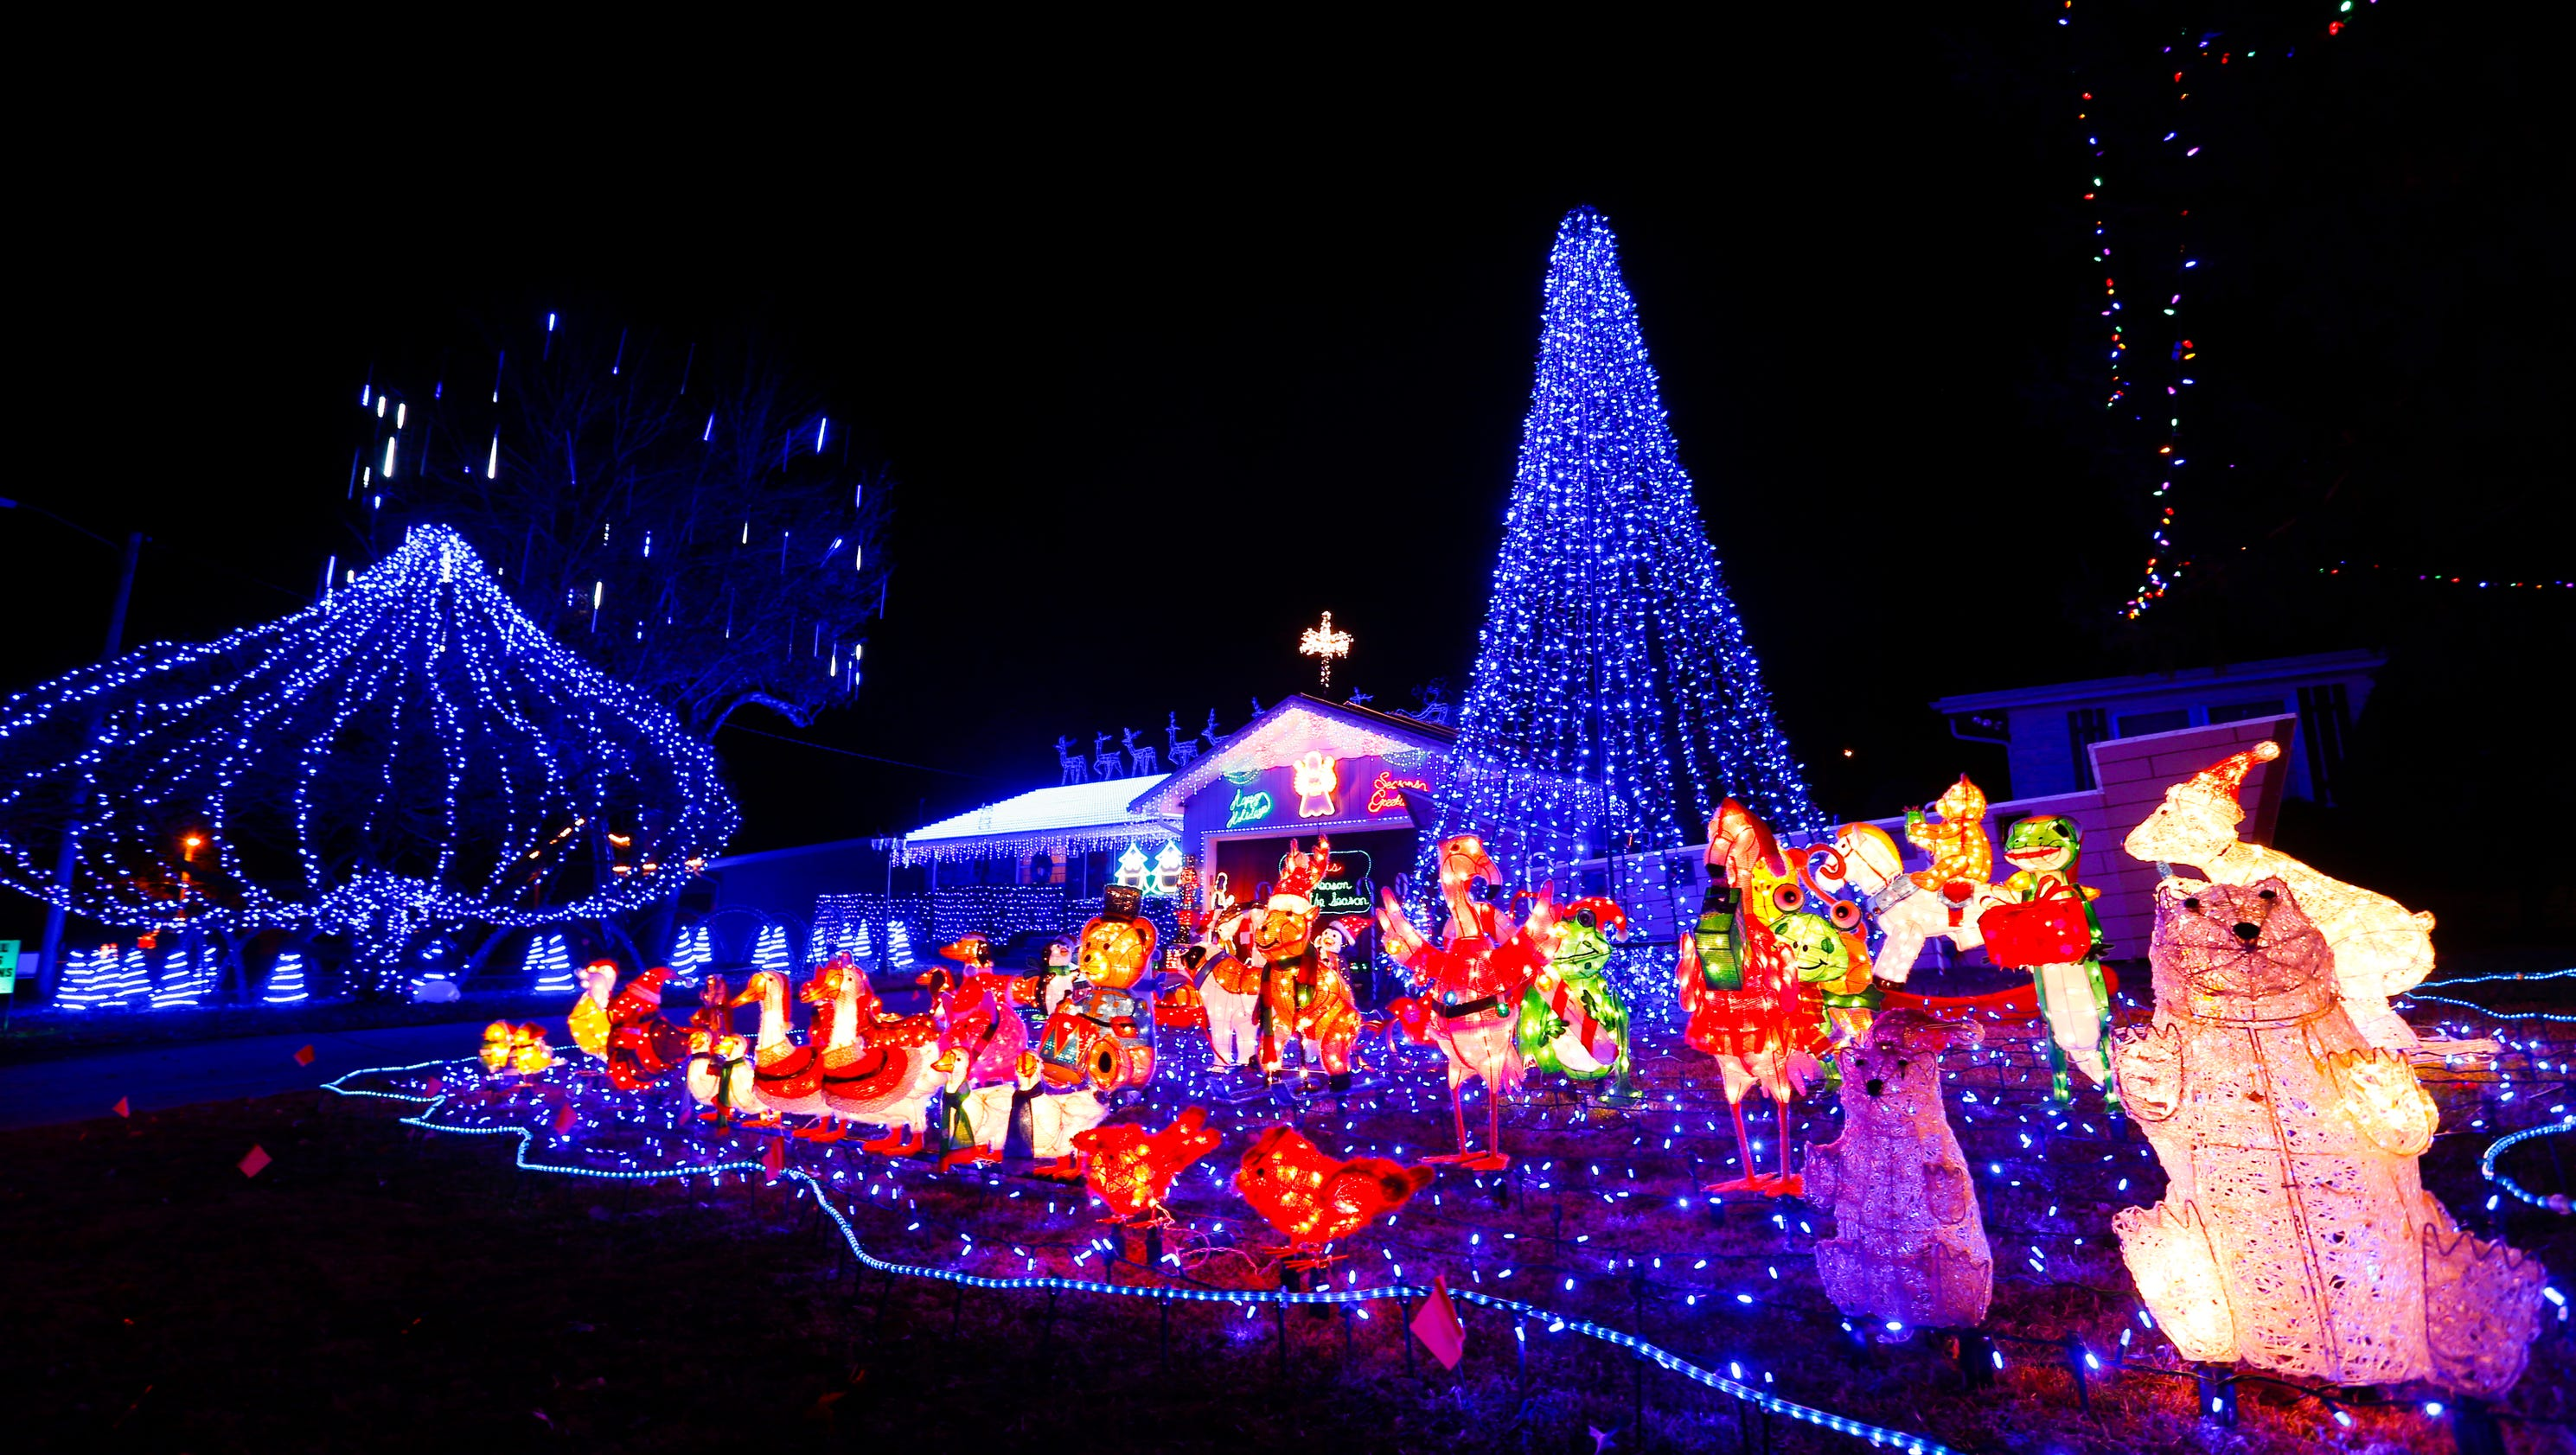 springfield news leader - Christmas Lights Synchronized To Music